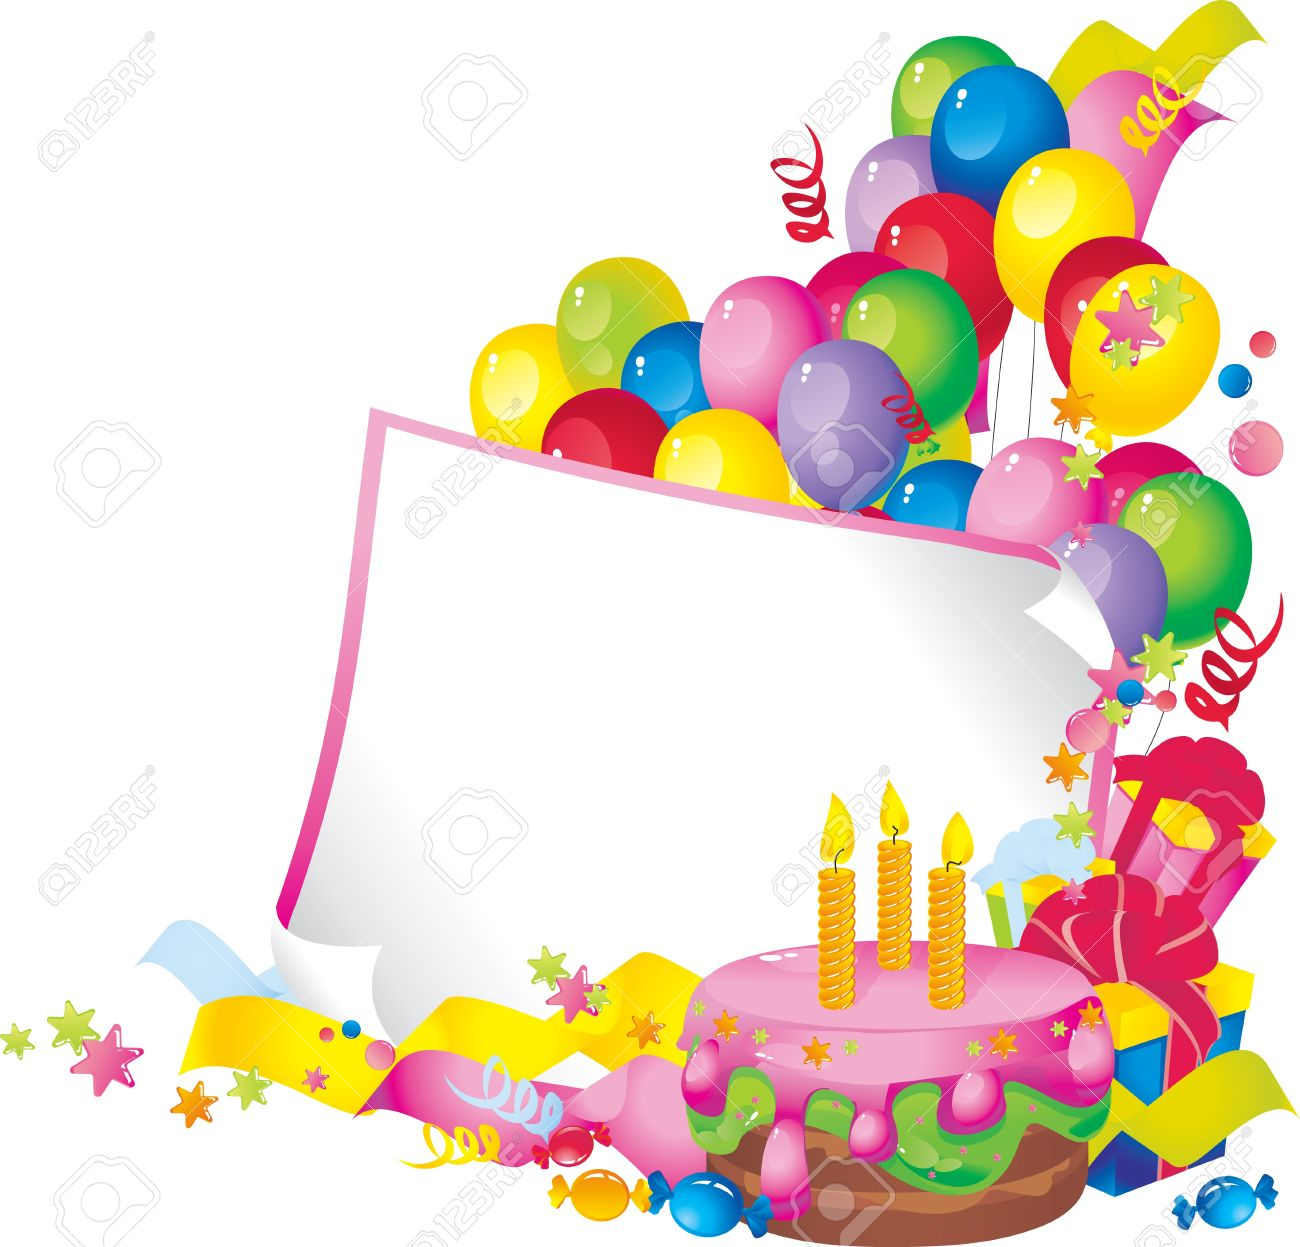 1300x1247 Bright Holiday Composition Of Cake, Balloons, Gift Boxes, Confetti